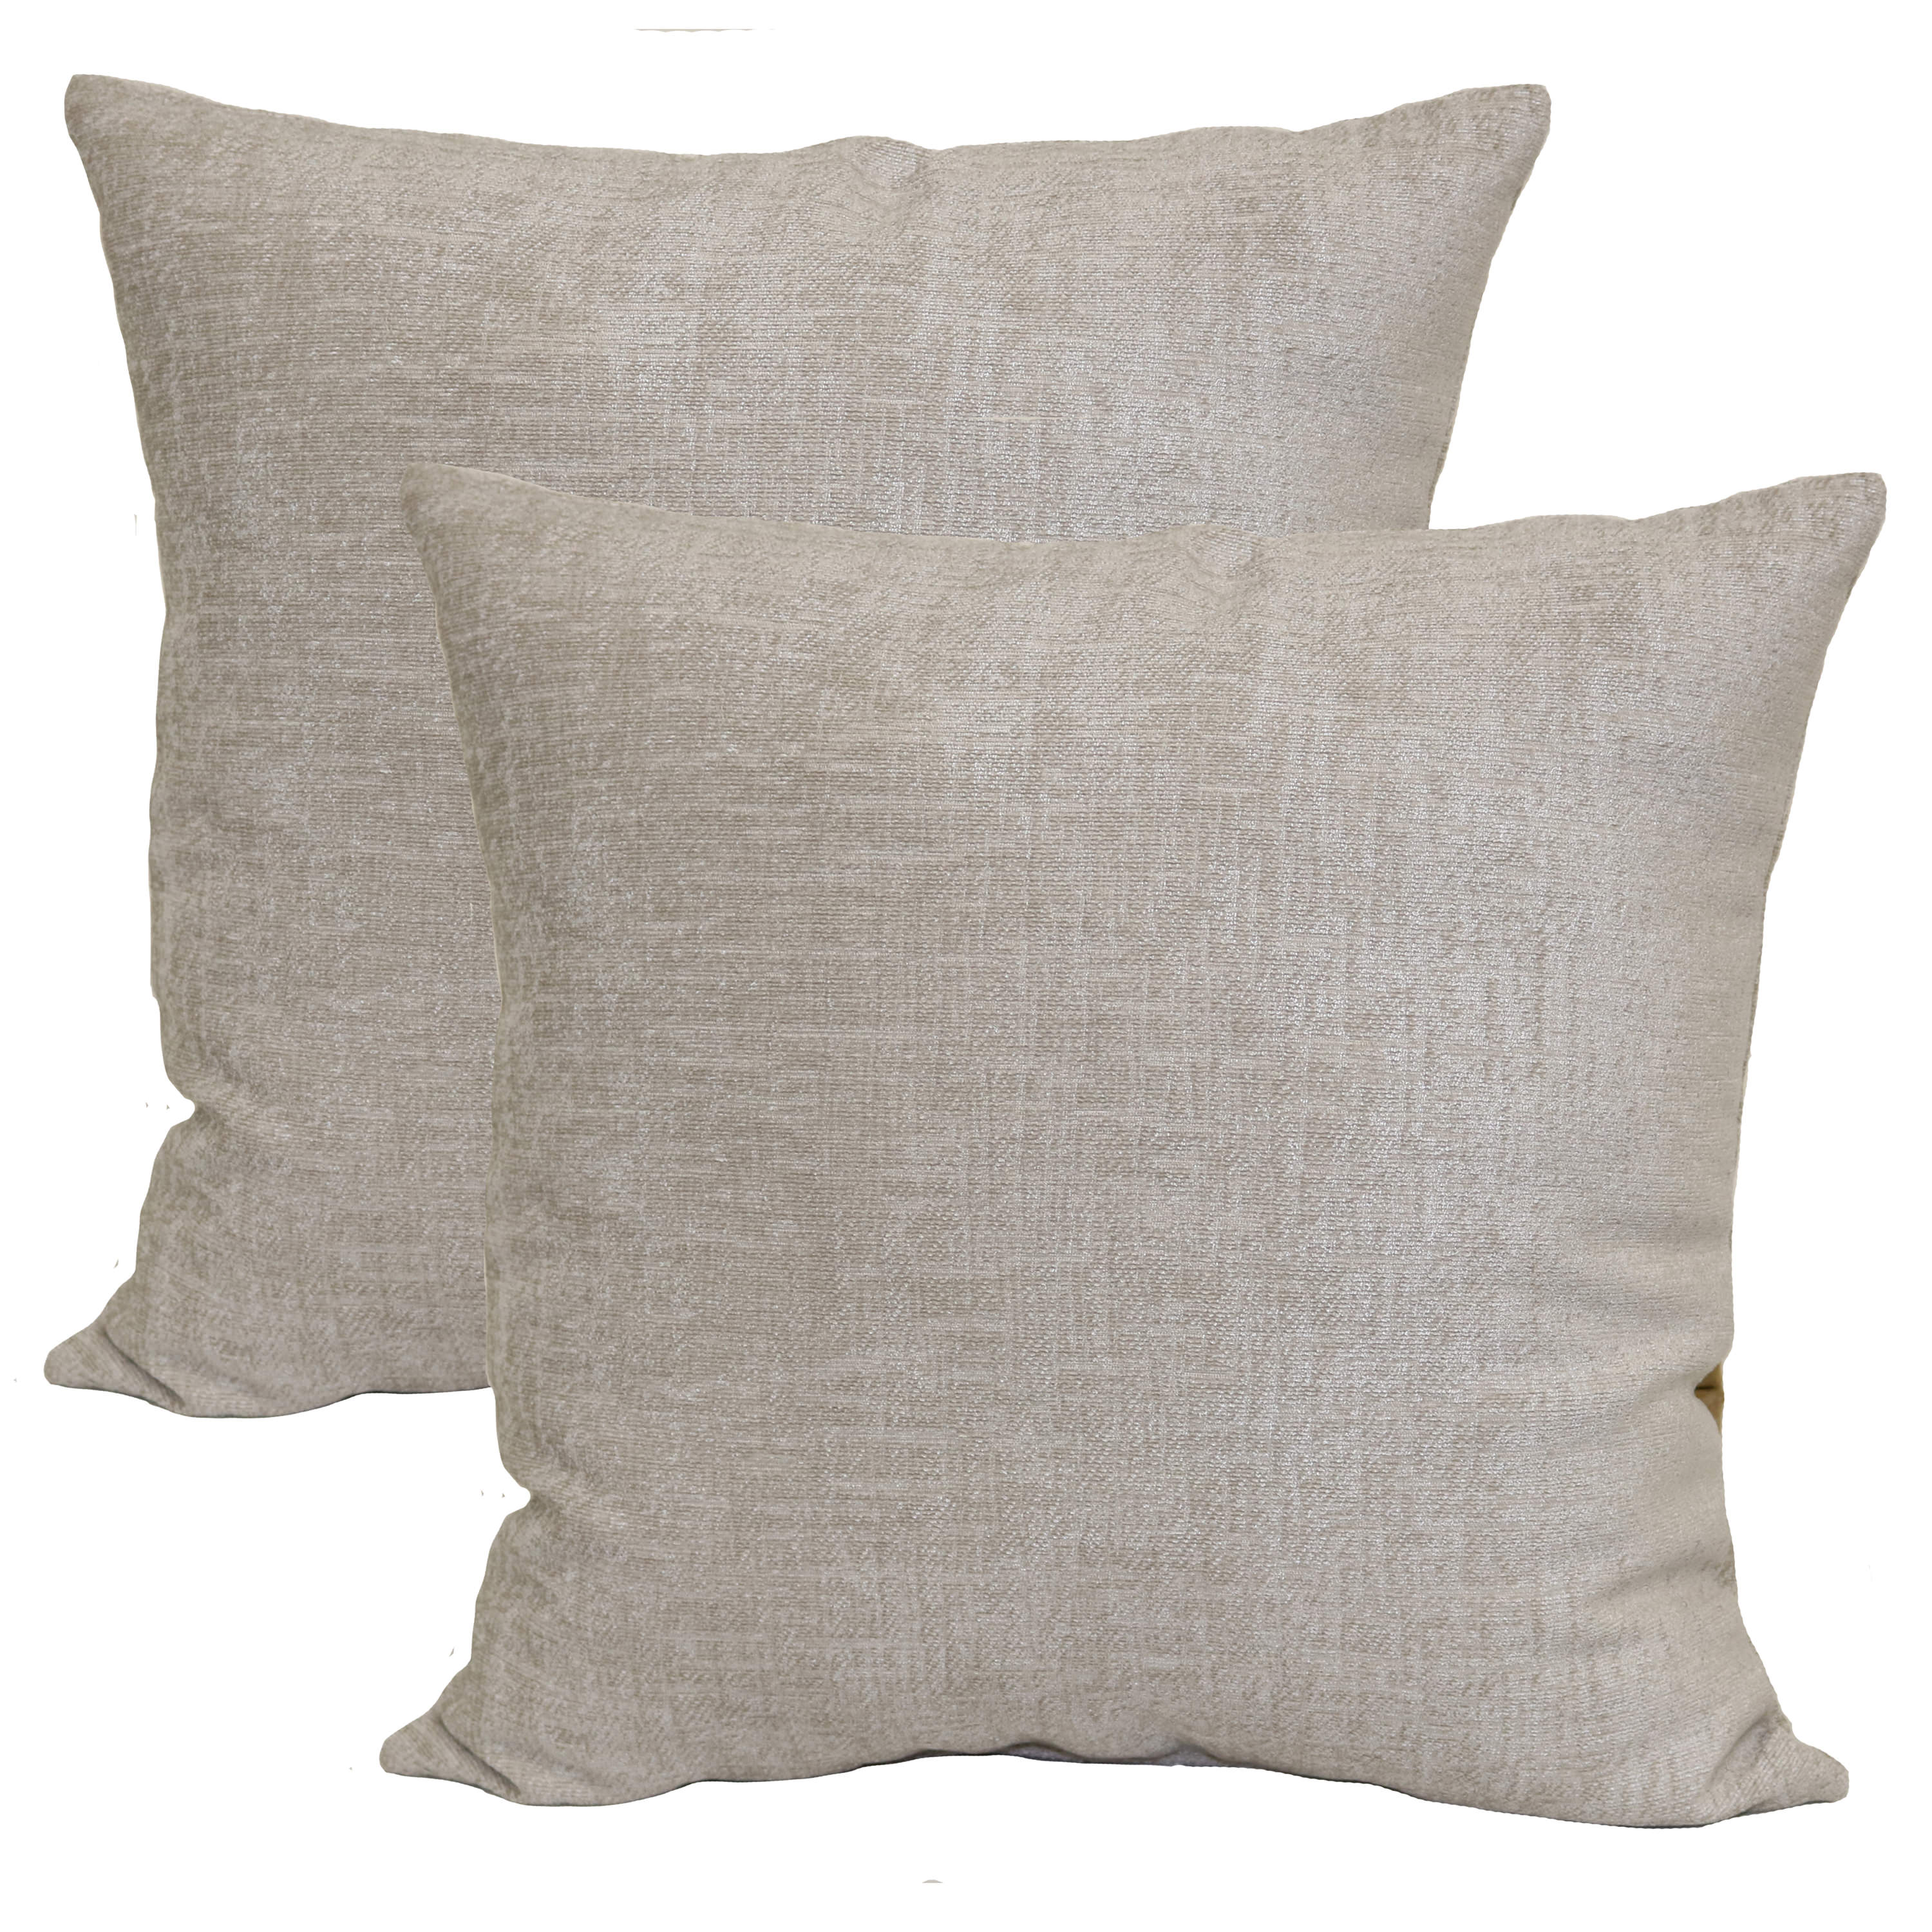 mainstays chenille decorative square throw pillow 18 x 18 gray pumice 2 pack